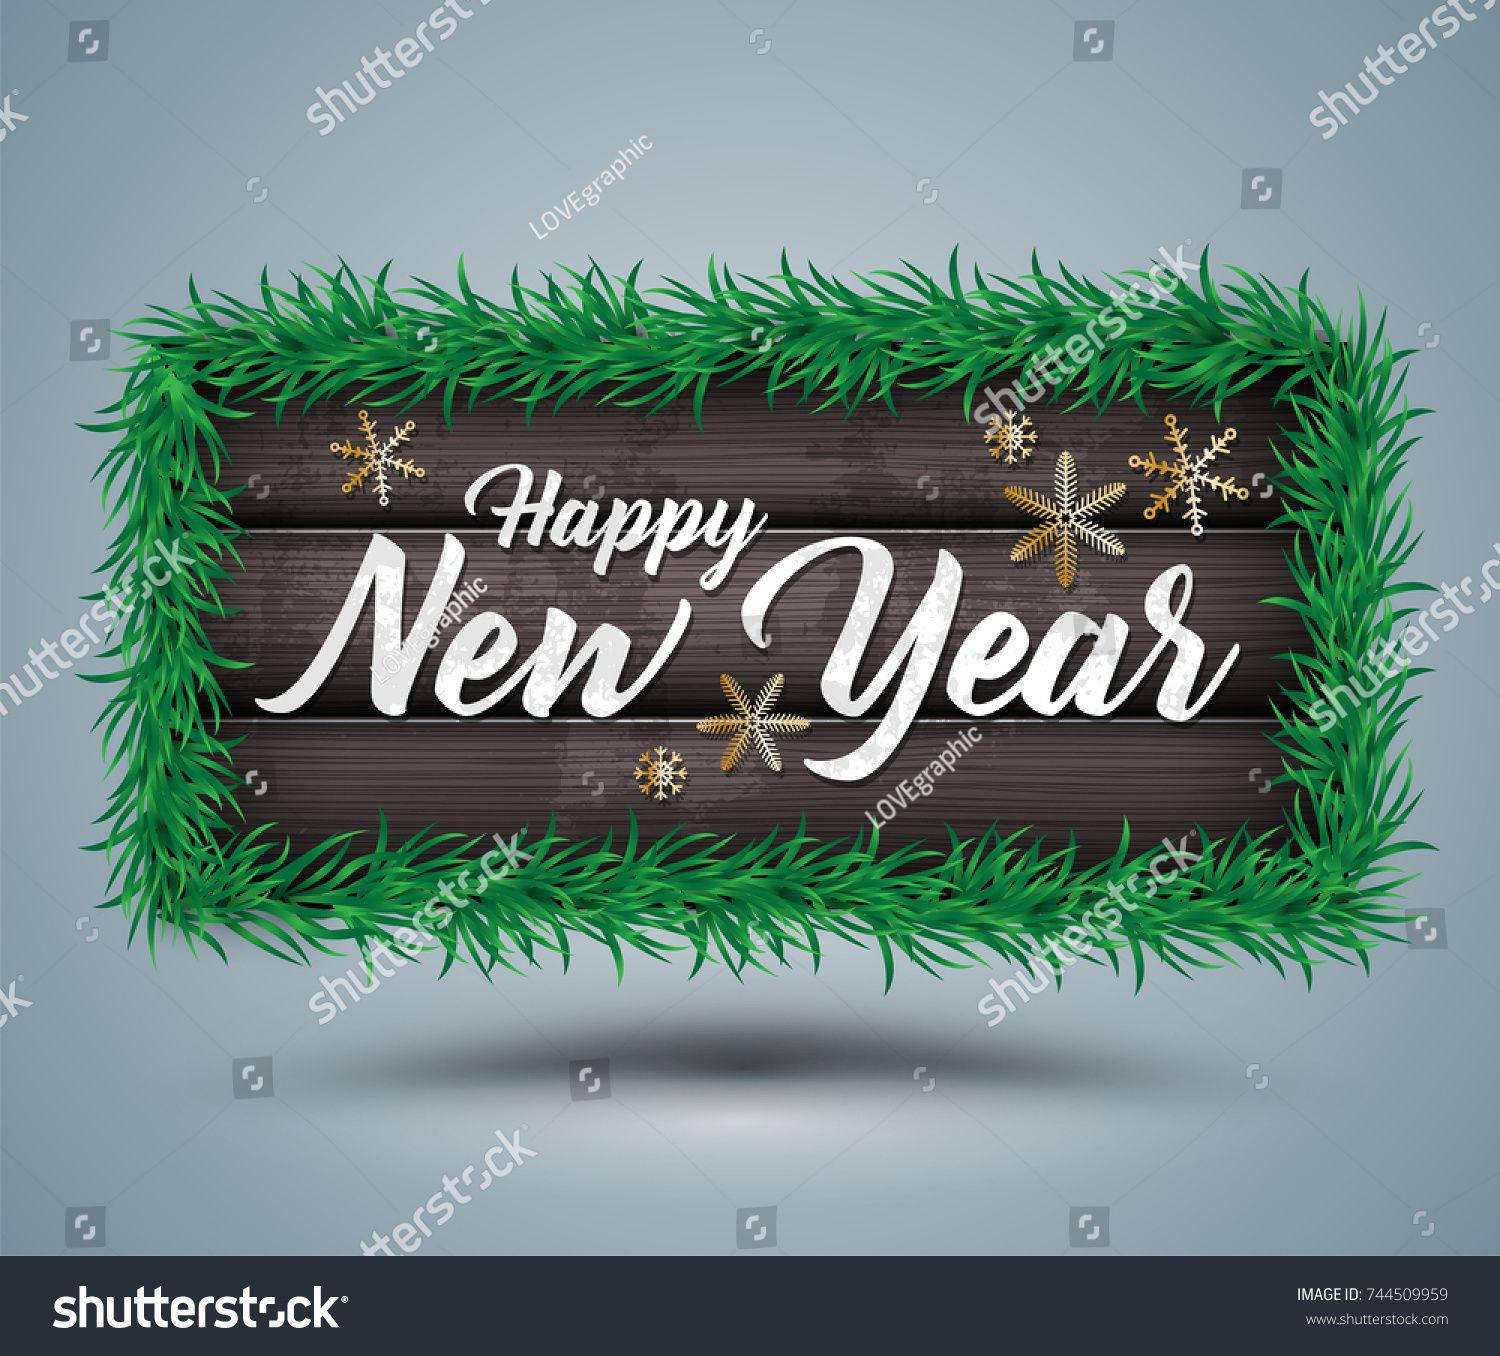 Happy New Year Lettering On Modern Wood Banner For New Year Element